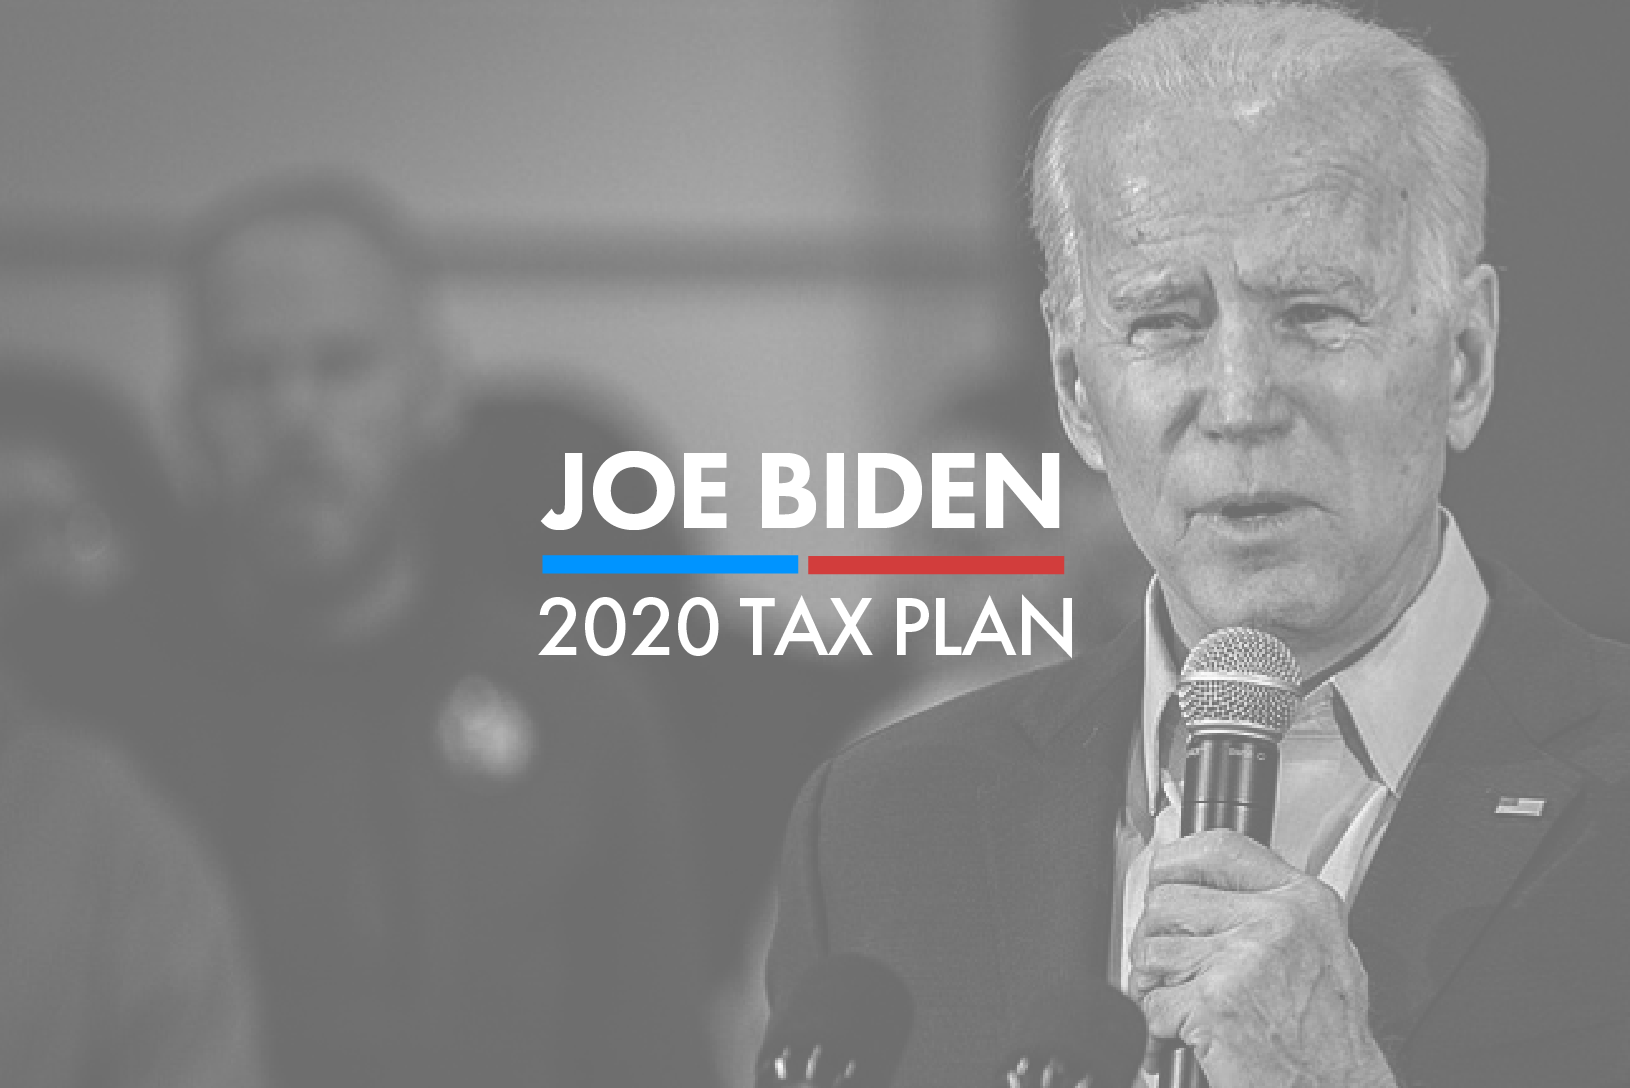 Details and Analysis of Former Vice President Biden's Tax Proposals